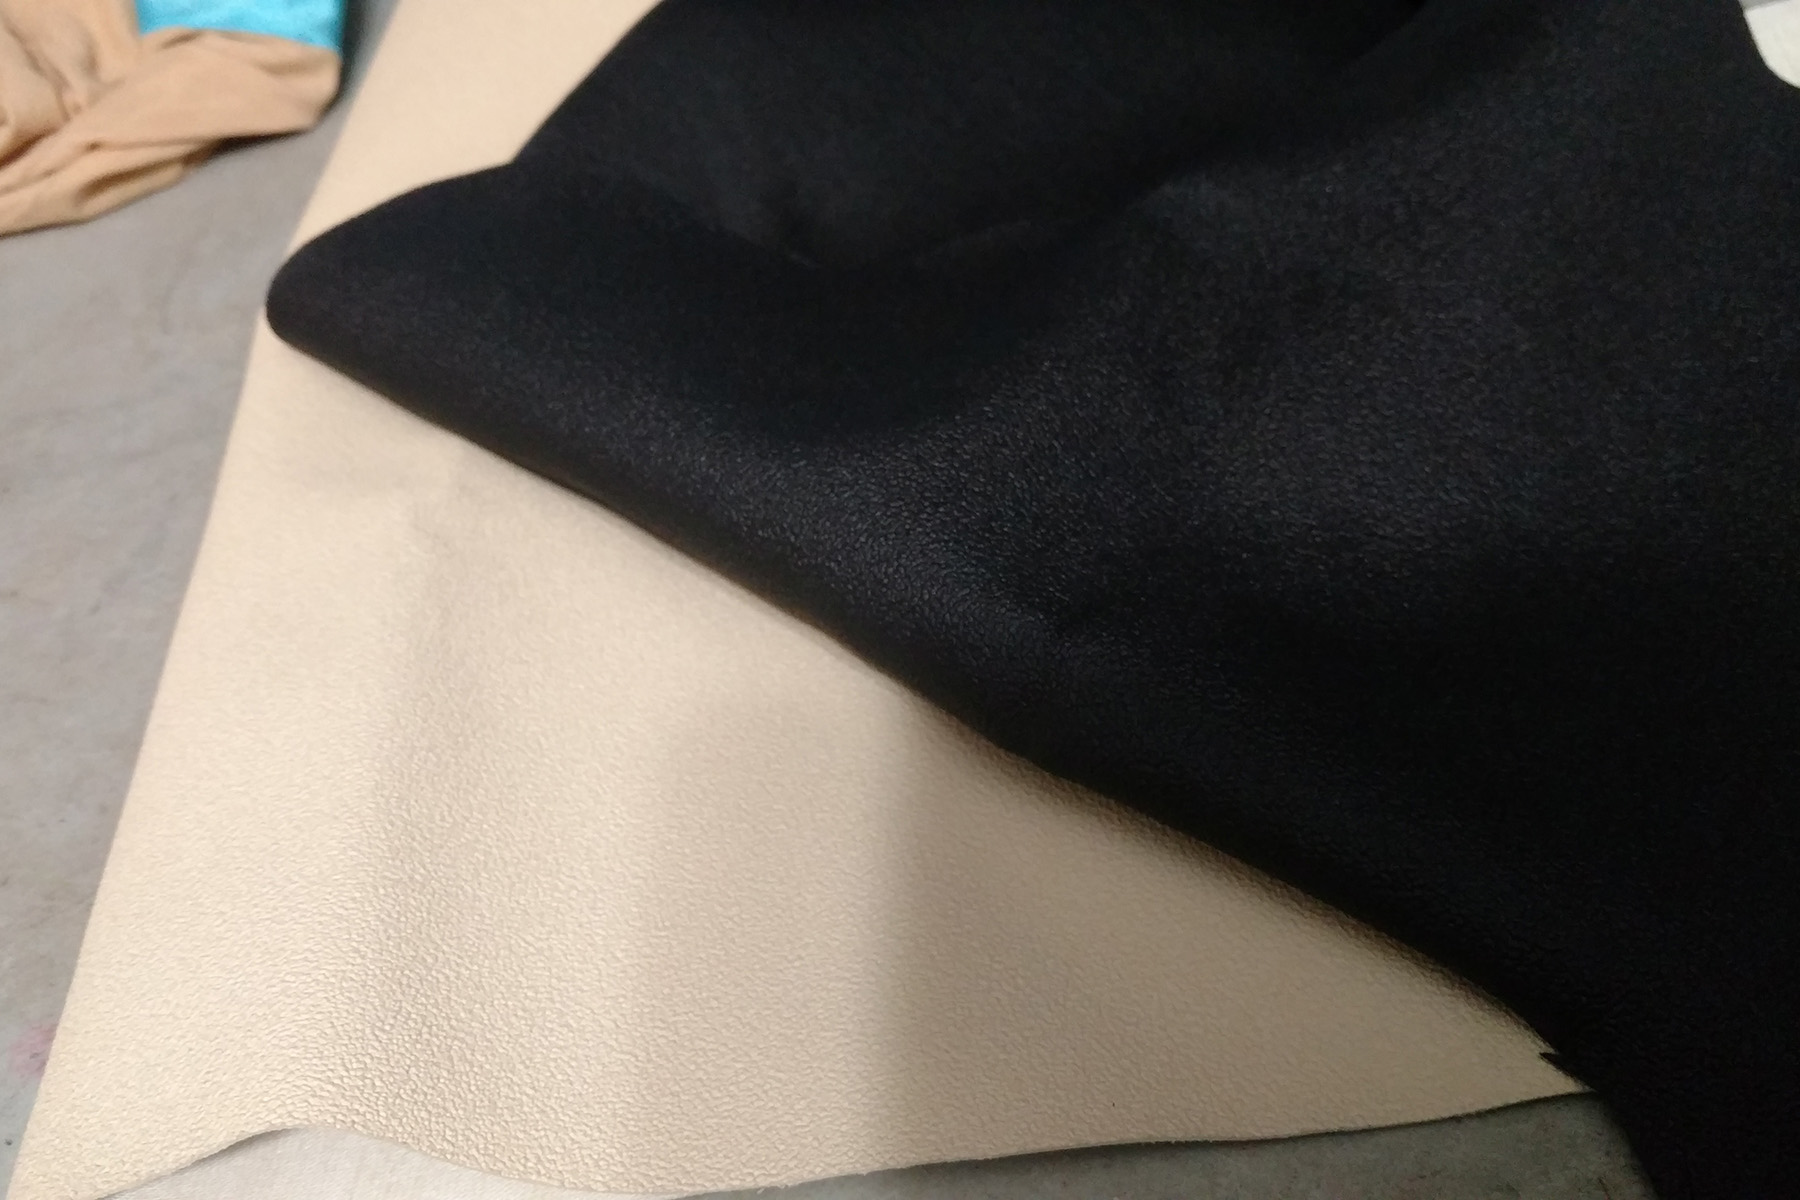 Two pieces of textured fabric are shown. One is beige, the other black.